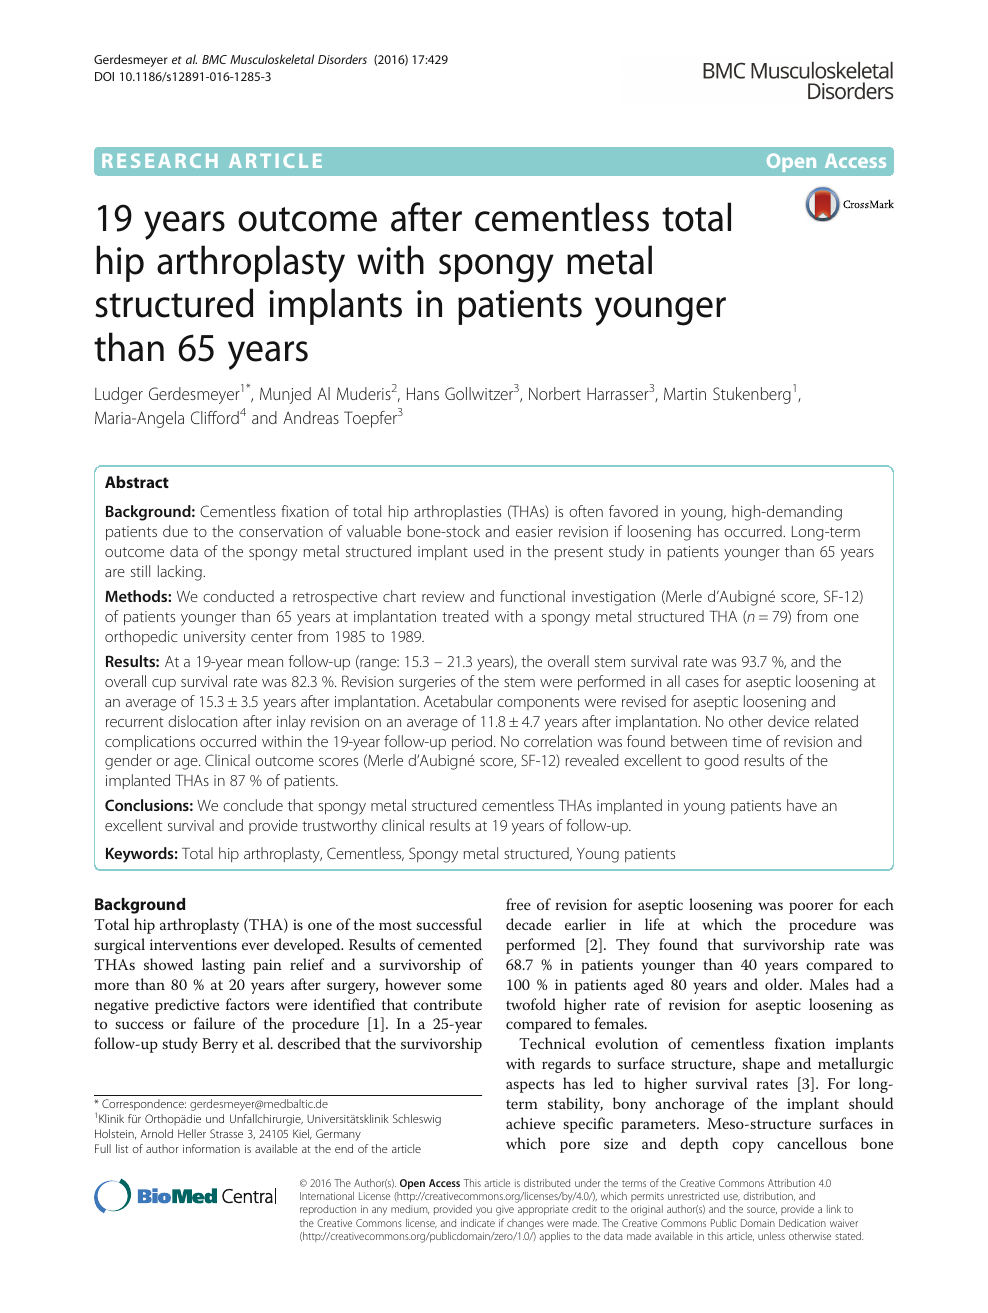 19 years outcome after cementless total hip arthroplasty